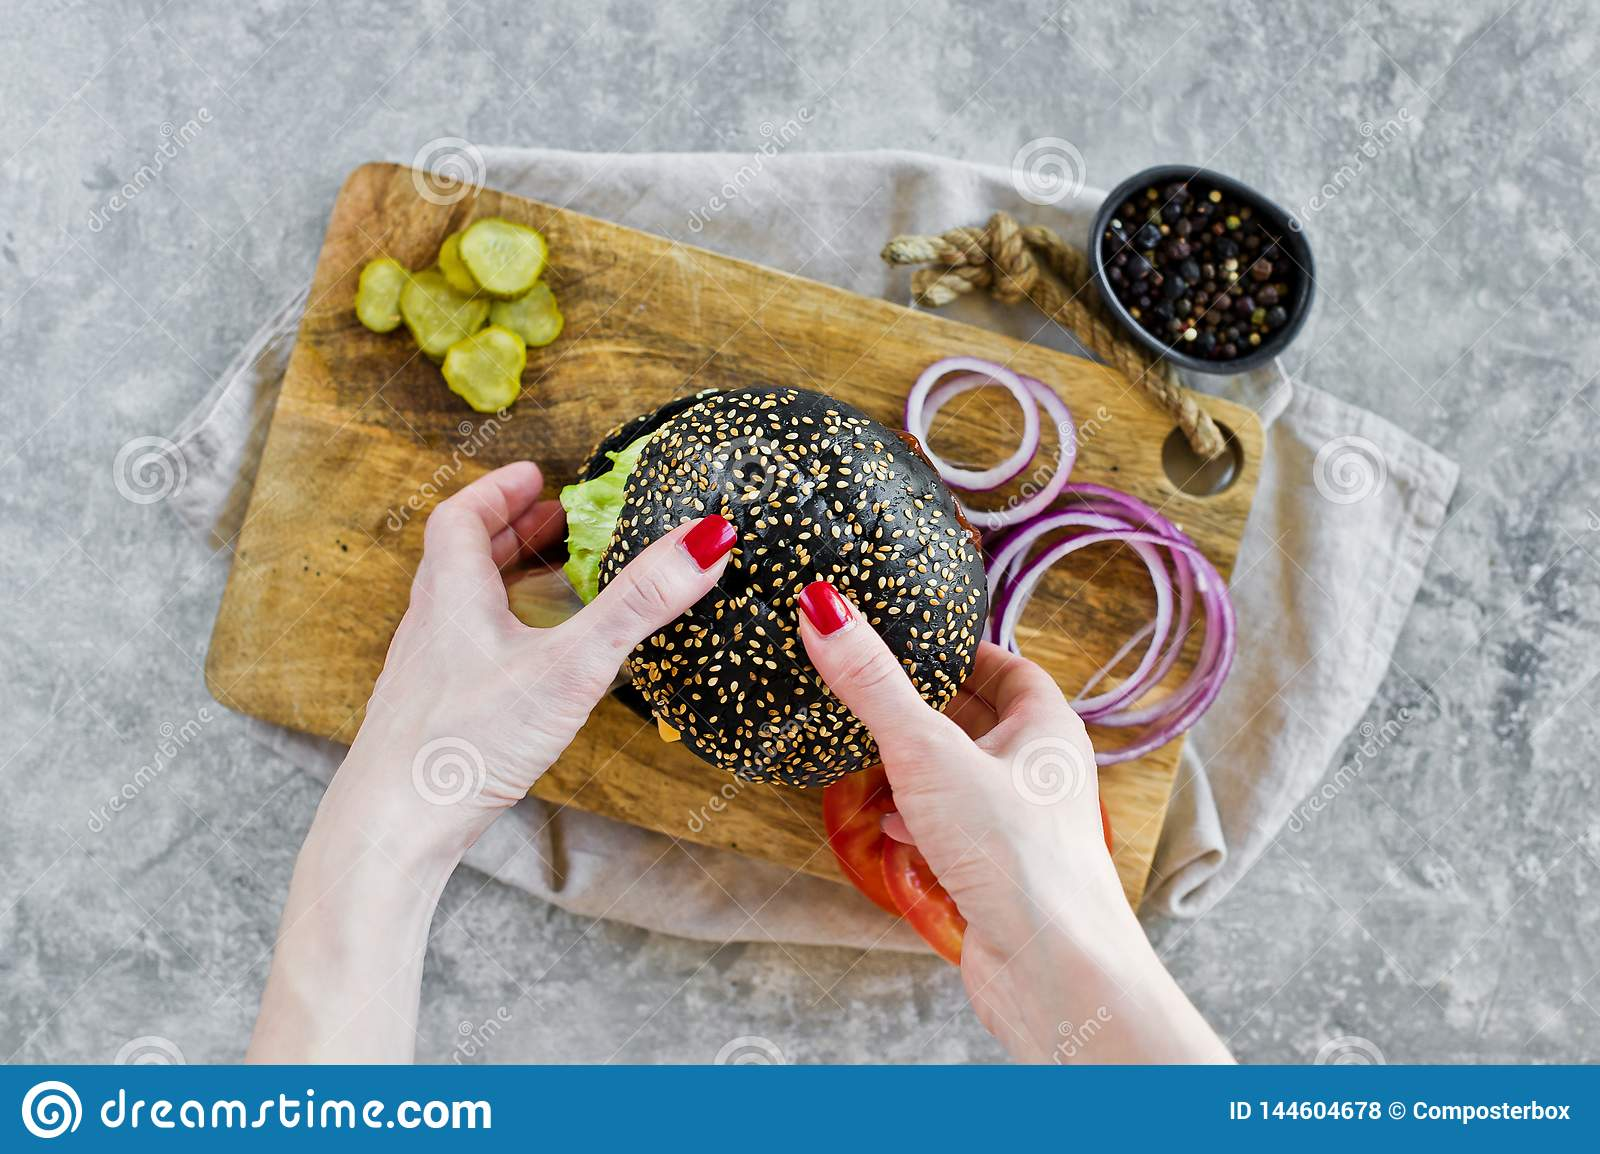 Girl`s hand holding a black Burger. Top view, gray background, space for text.